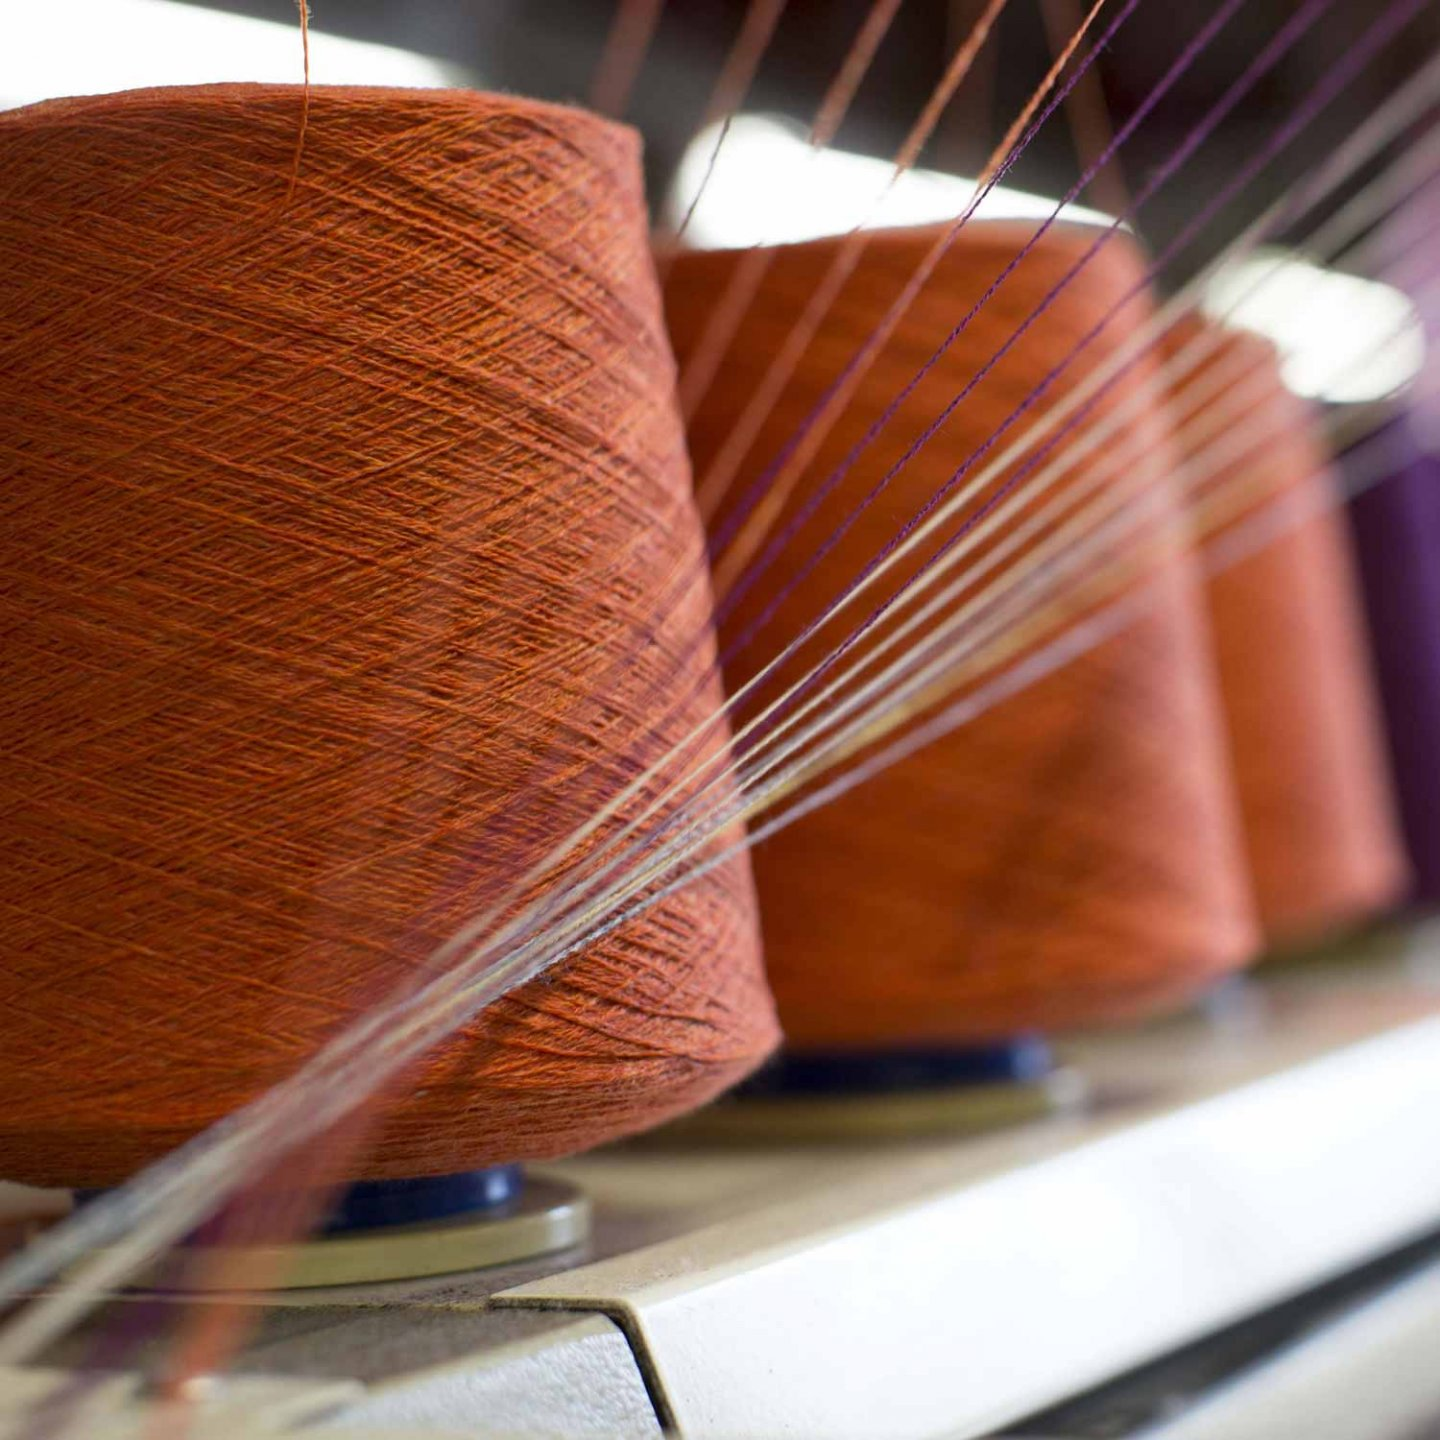 Johnstons of Elgin knitwear production facility is located in the historic town of Hawick in the beautiful Scottish Borders, known for its rich textiles heritage and the highest quality cashmere and woollen products.